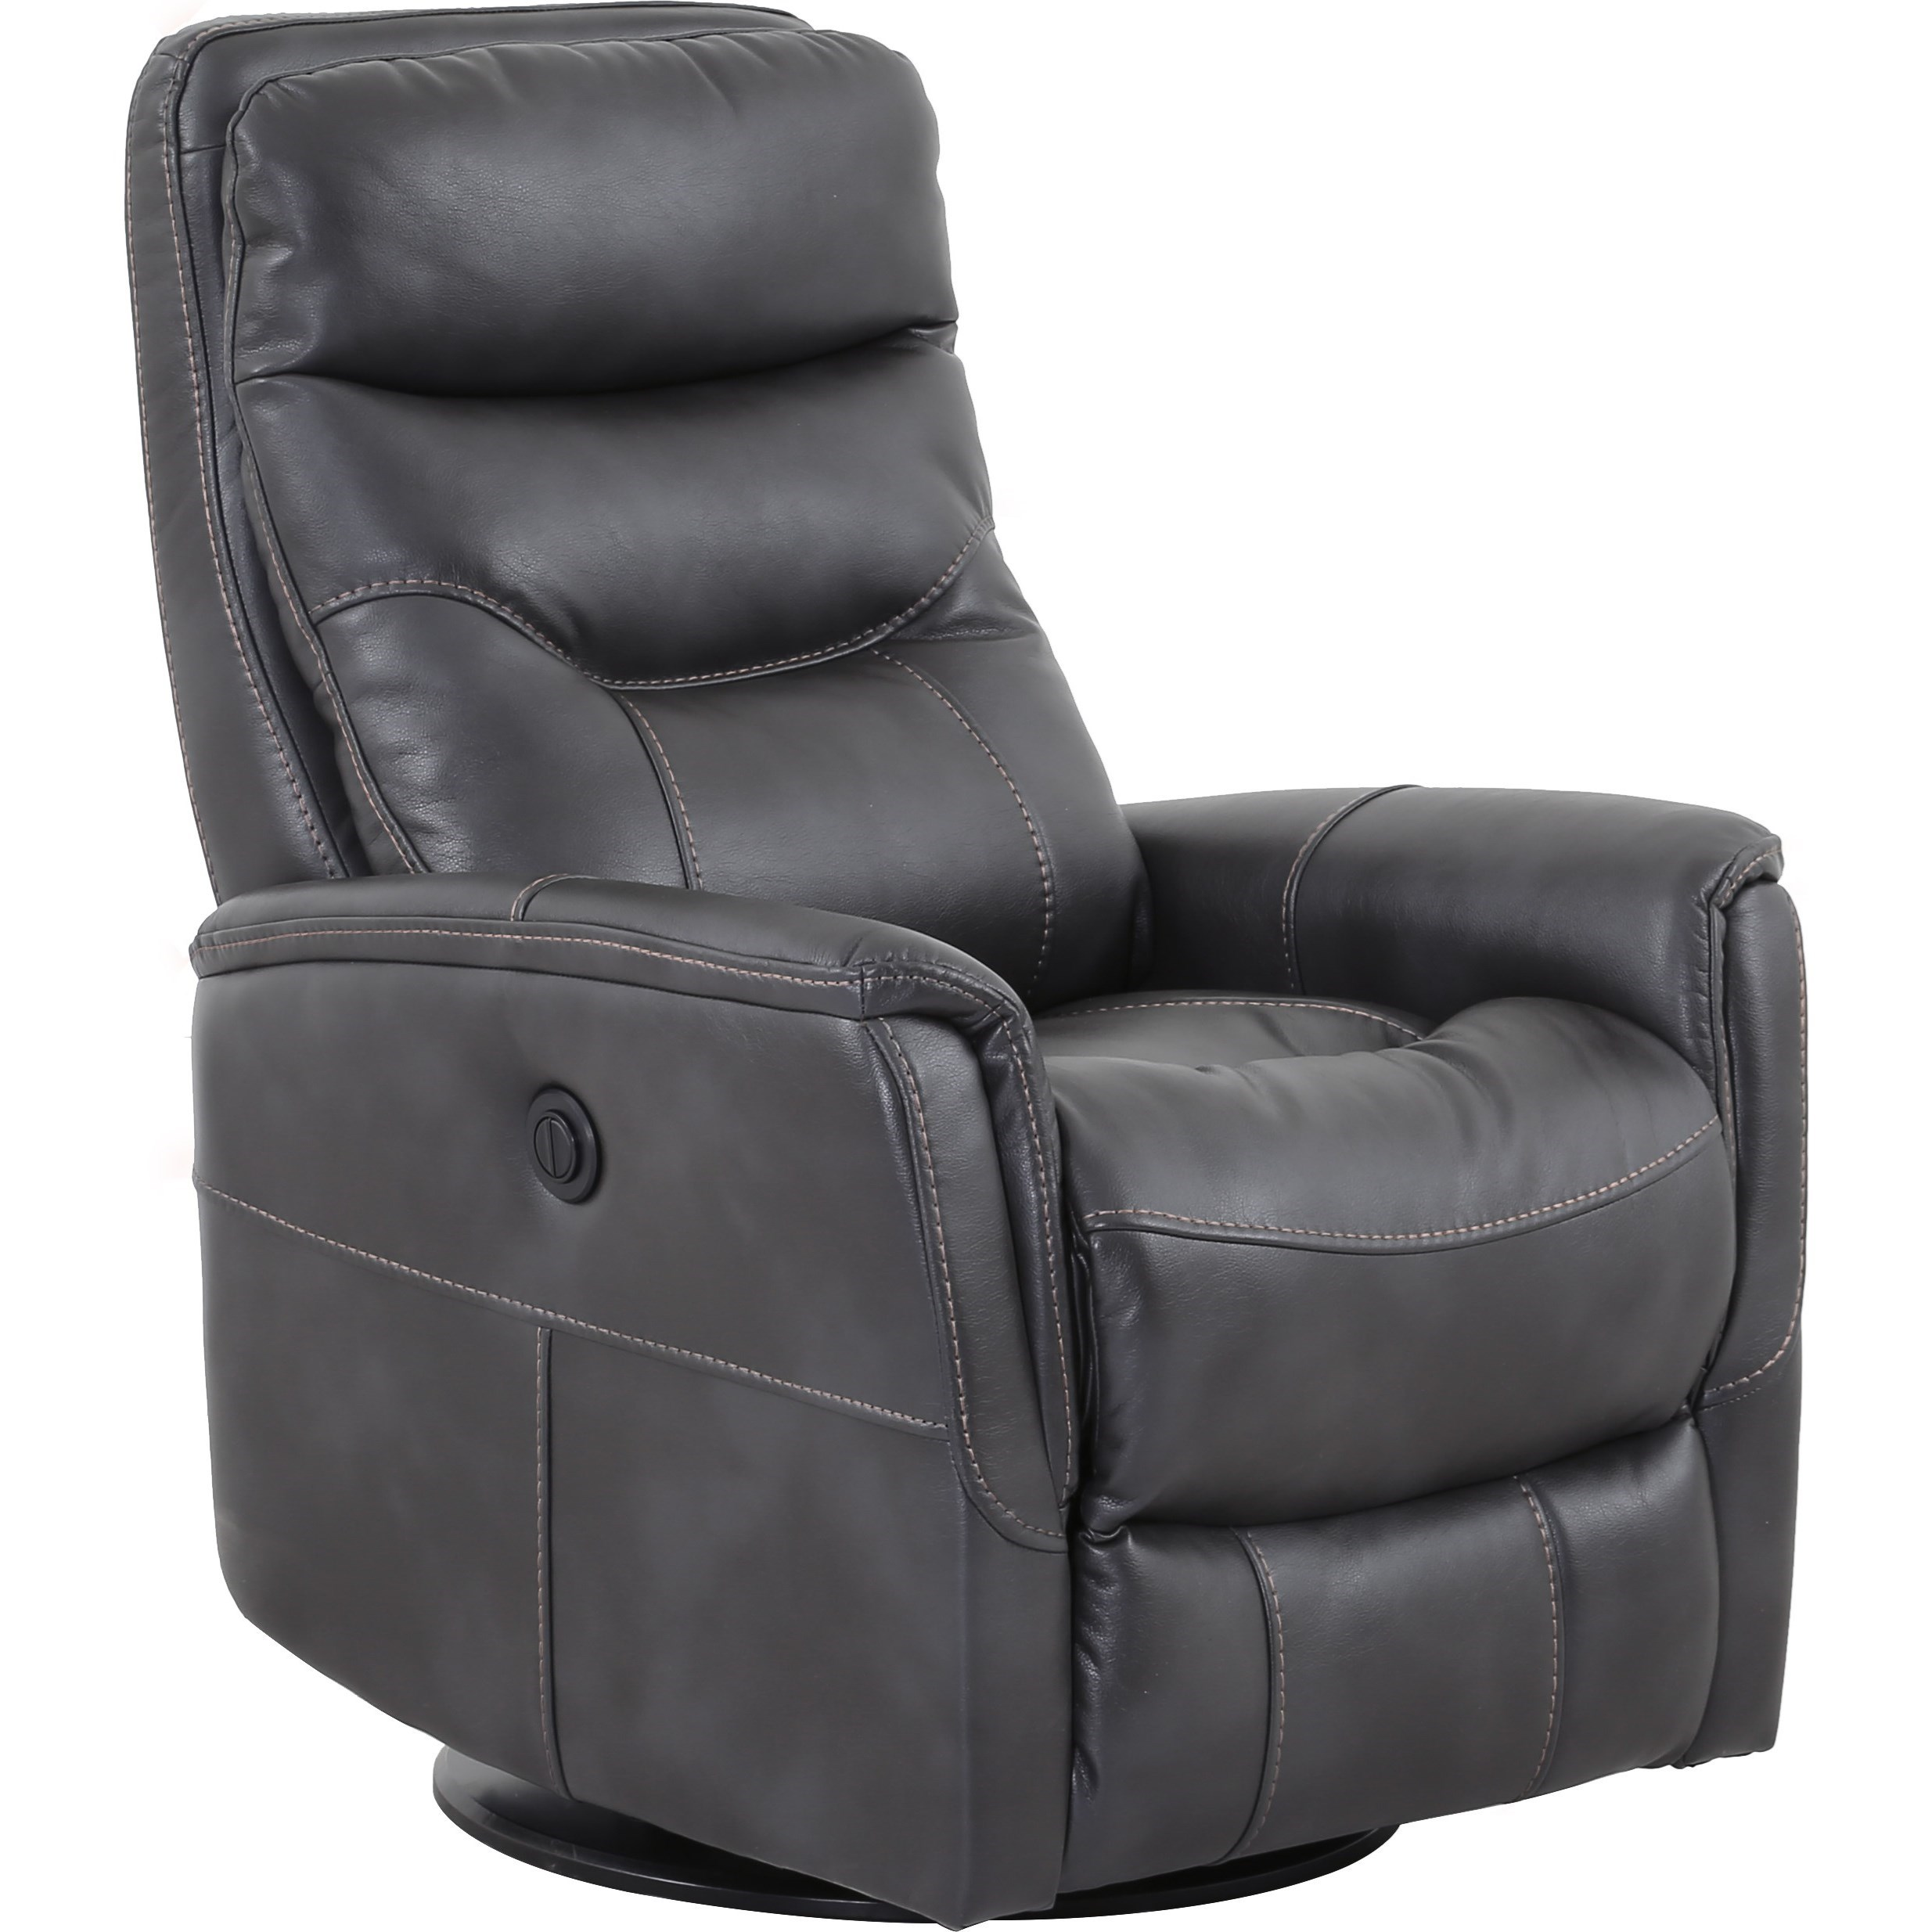 Swivel Glider Power Recliner